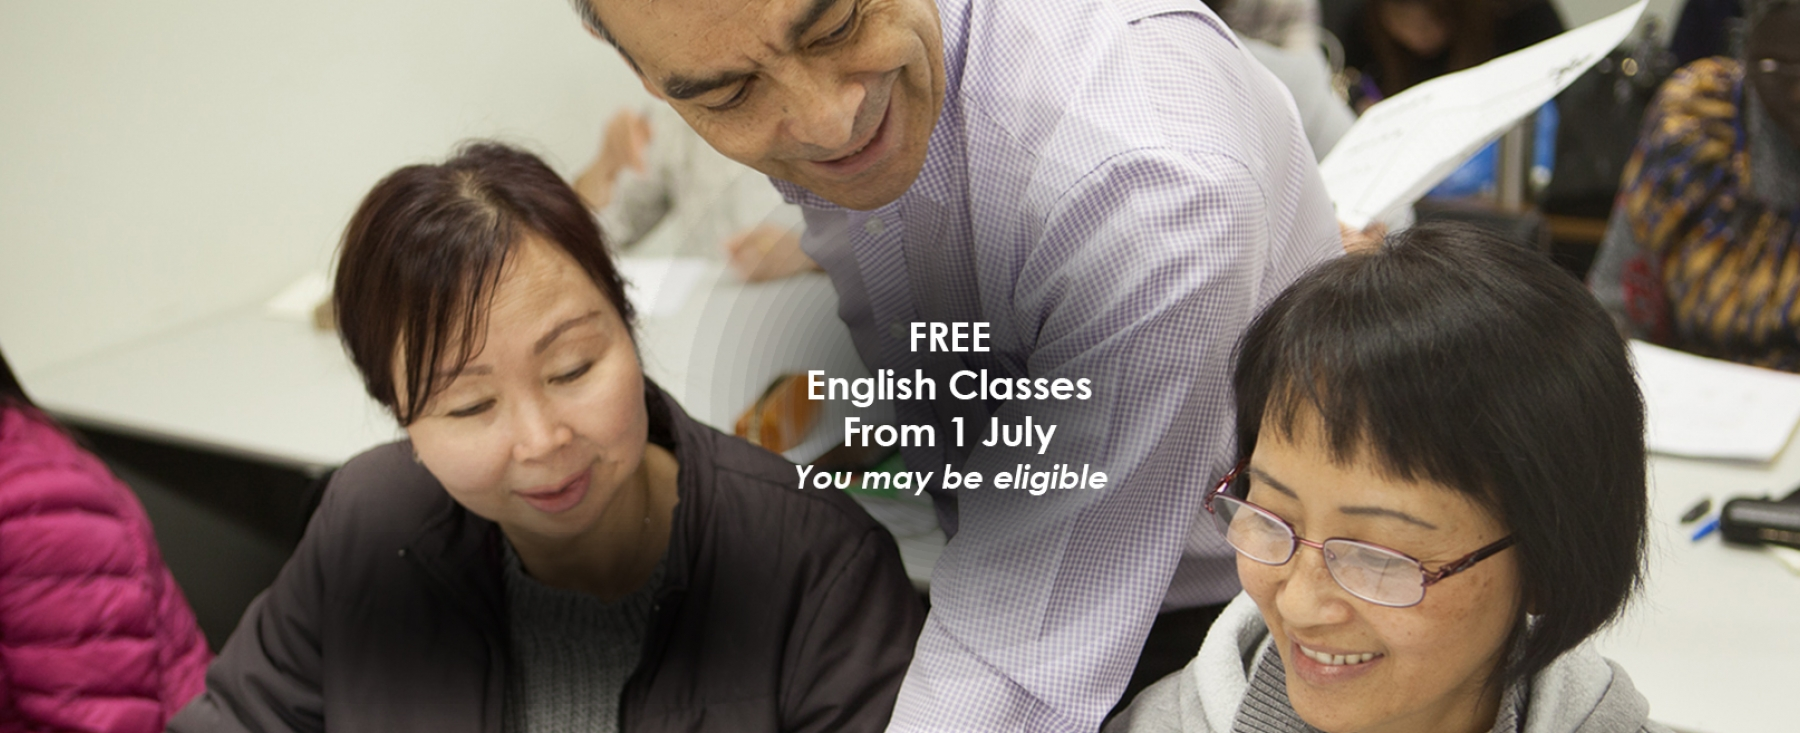 FREE English classes for 510 hours for eligible migrants.